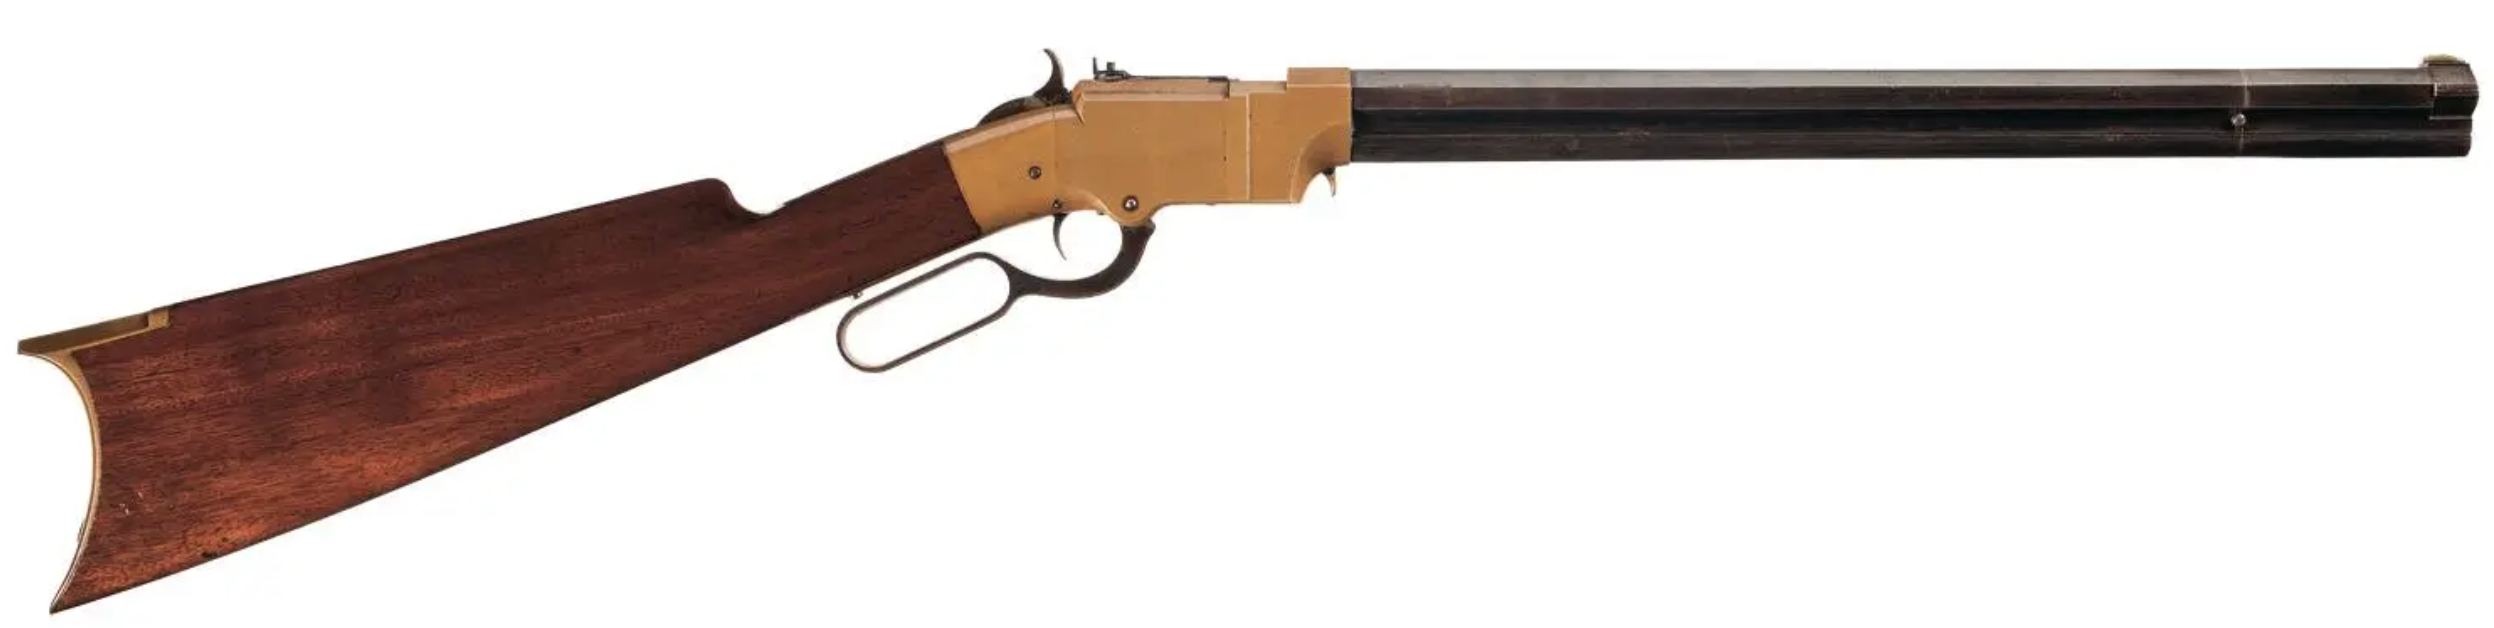 Volcanic repeating rifle